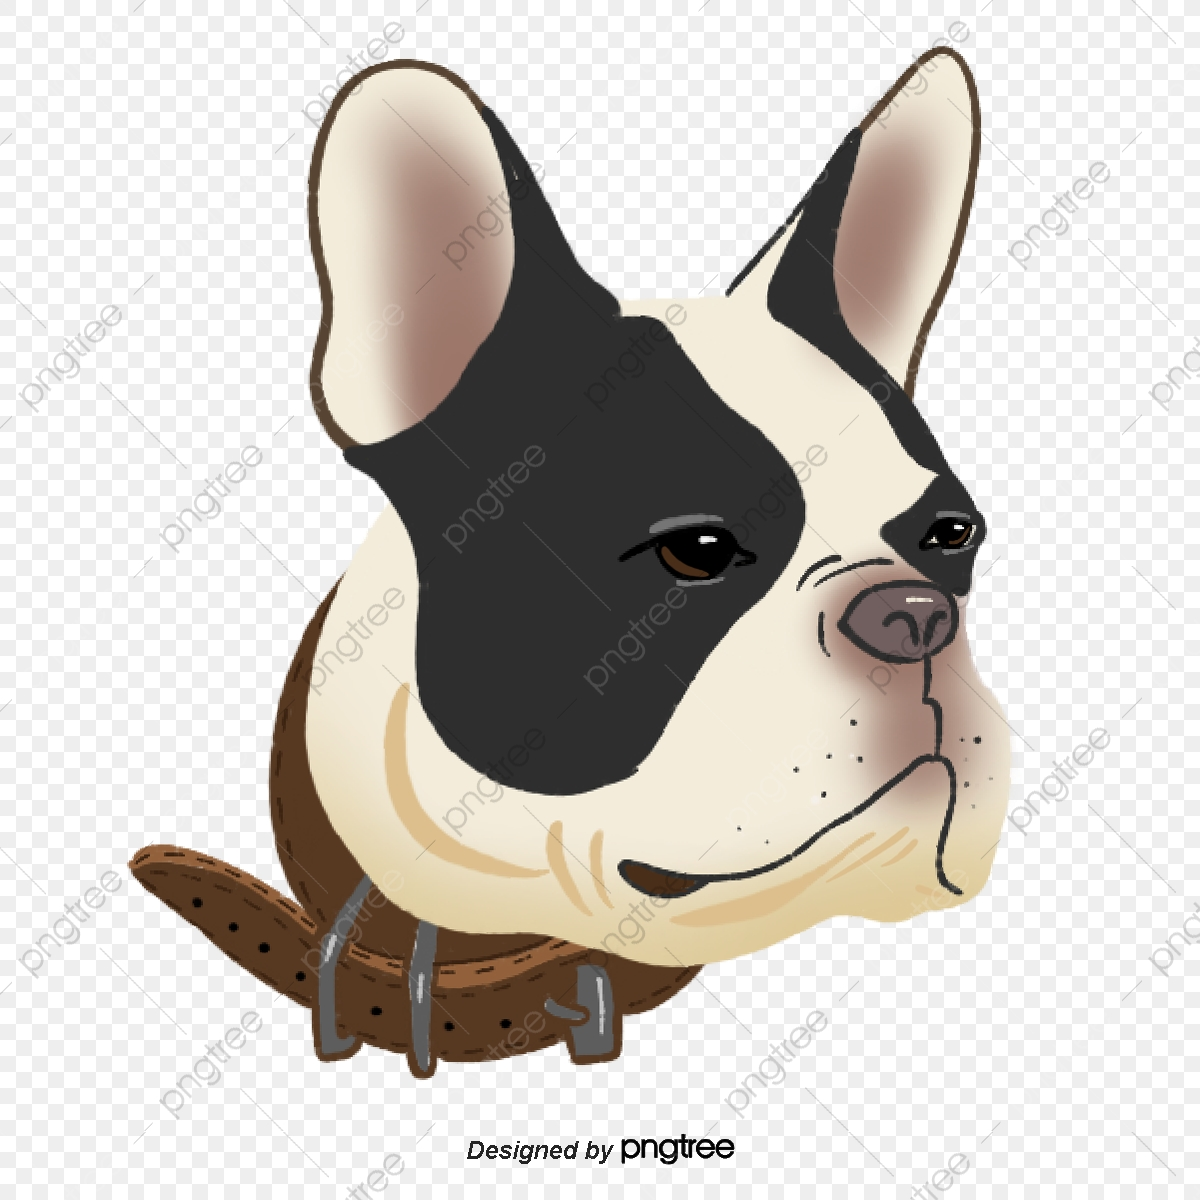 Funny red dogs png. Bulldog clipart pet